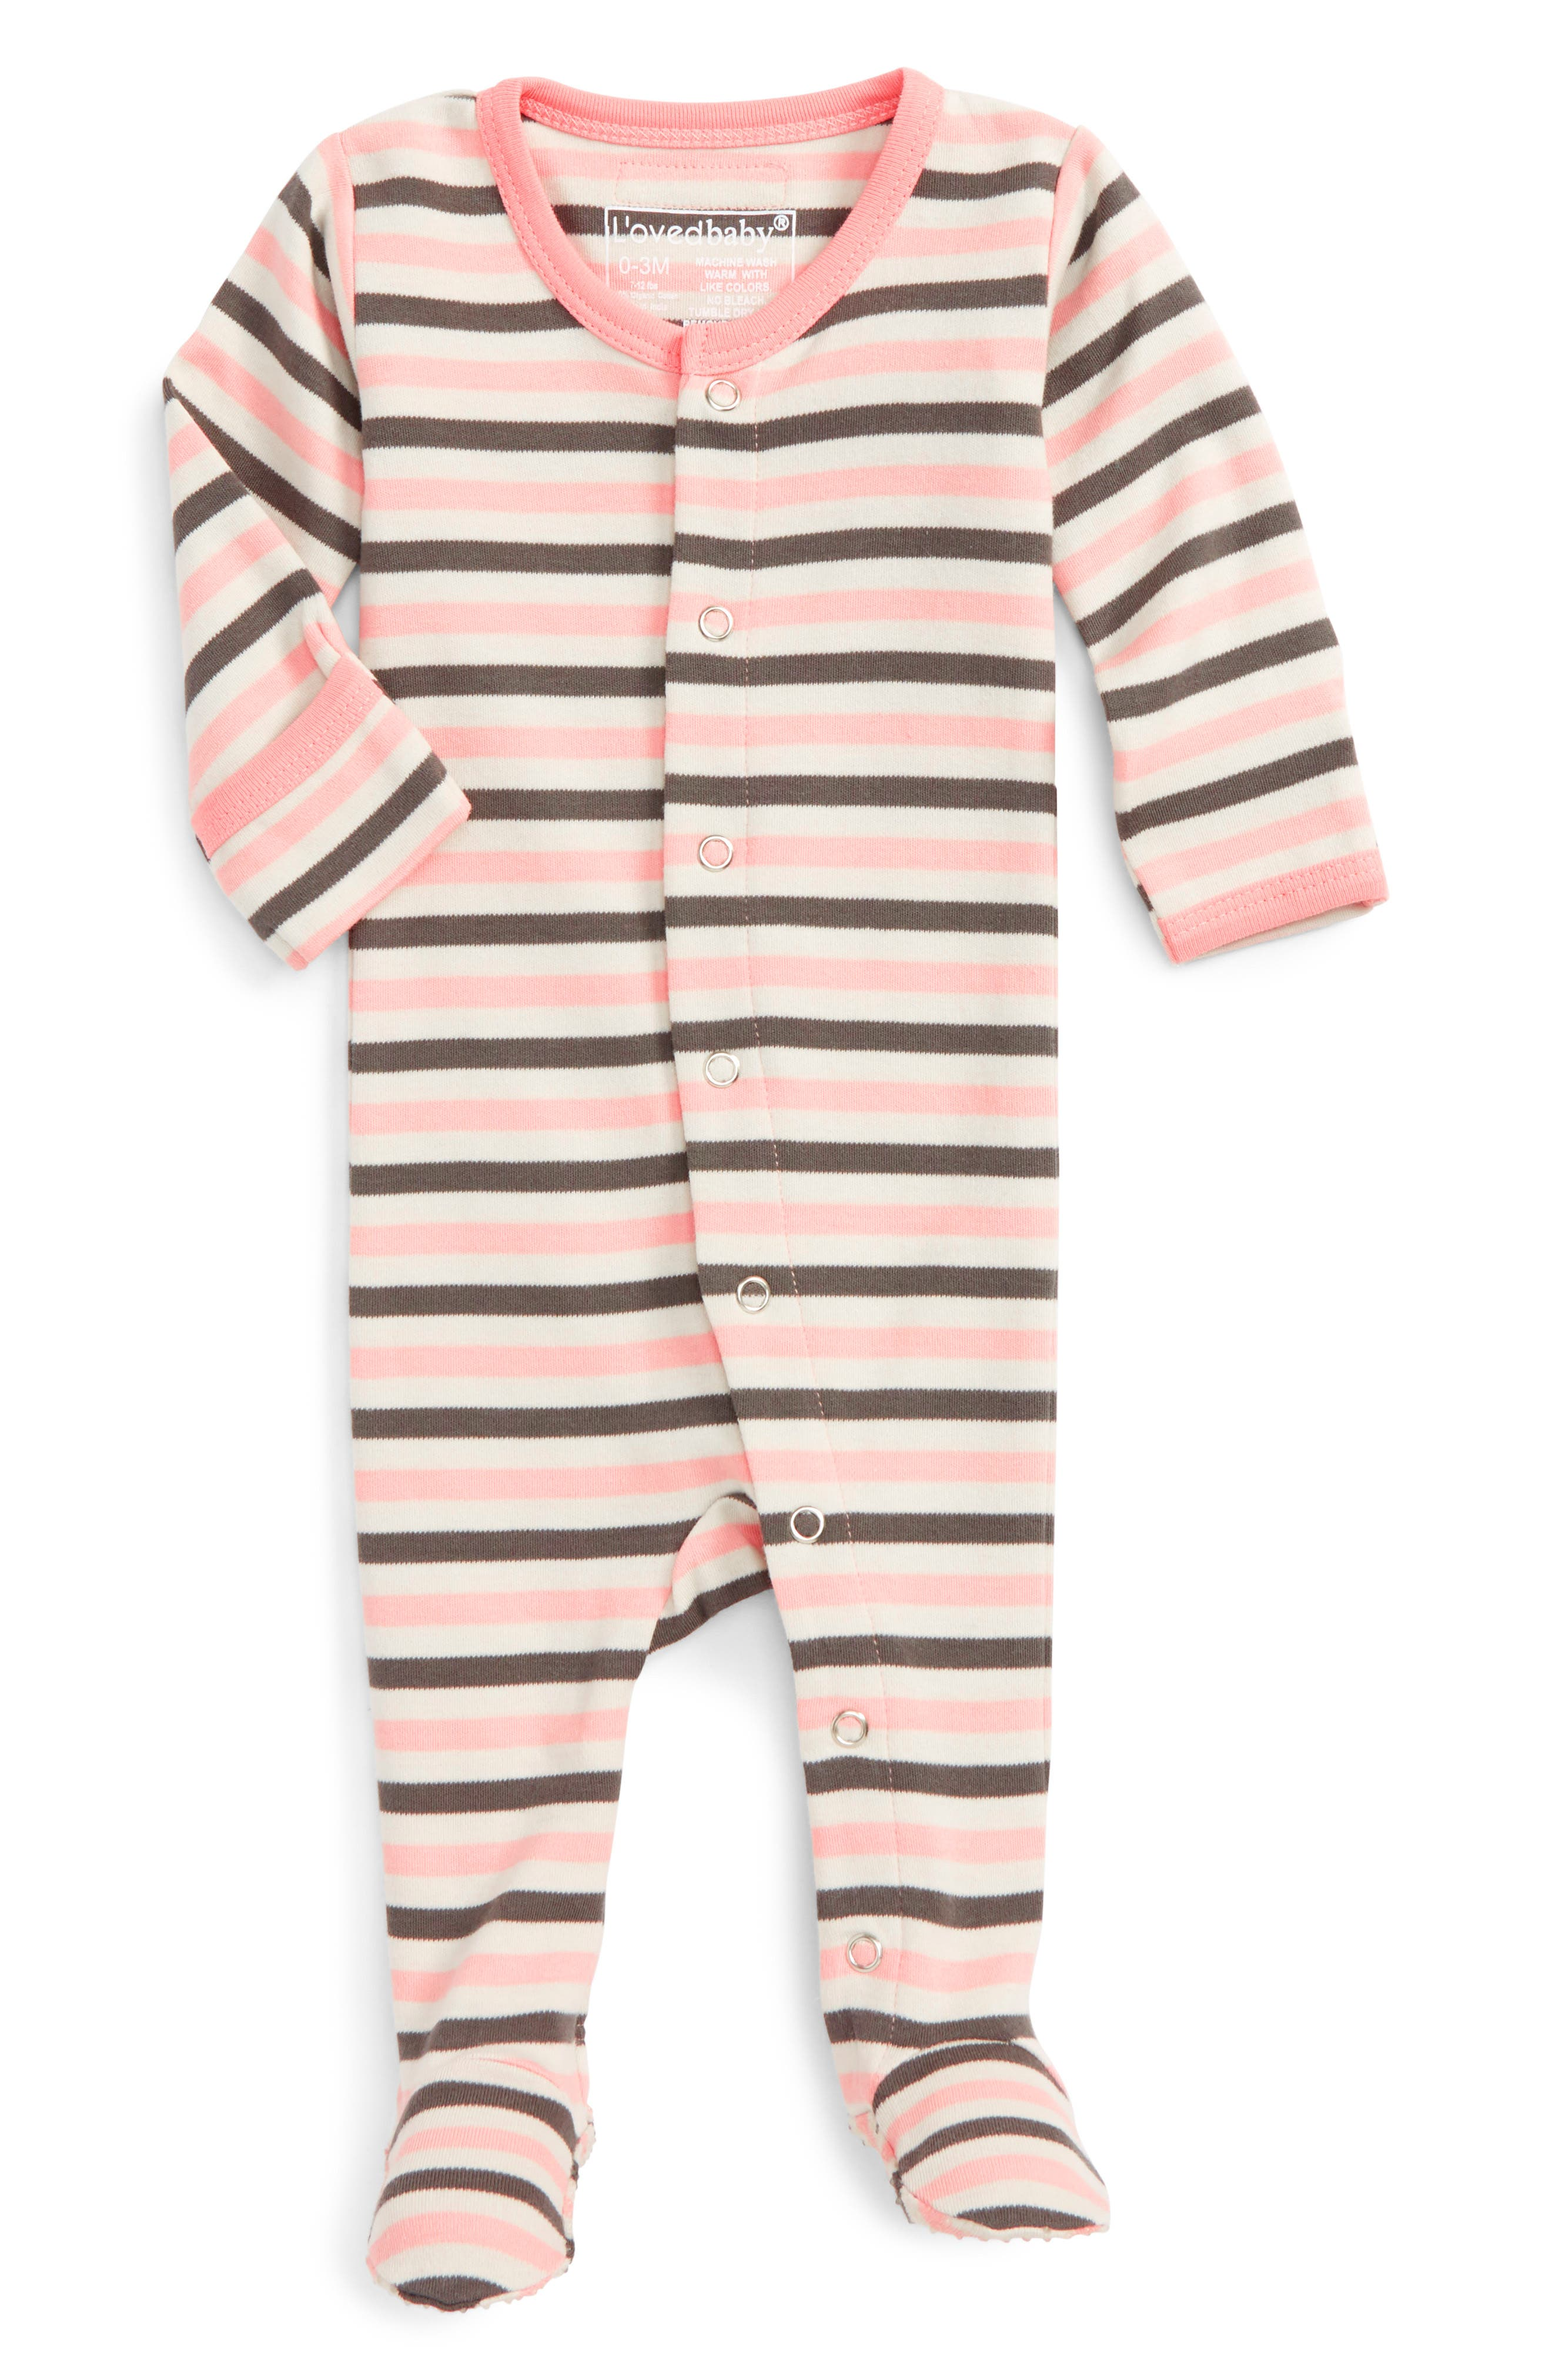 Main Image - L'ovedbaby Organic Cotton Footie (Baby)